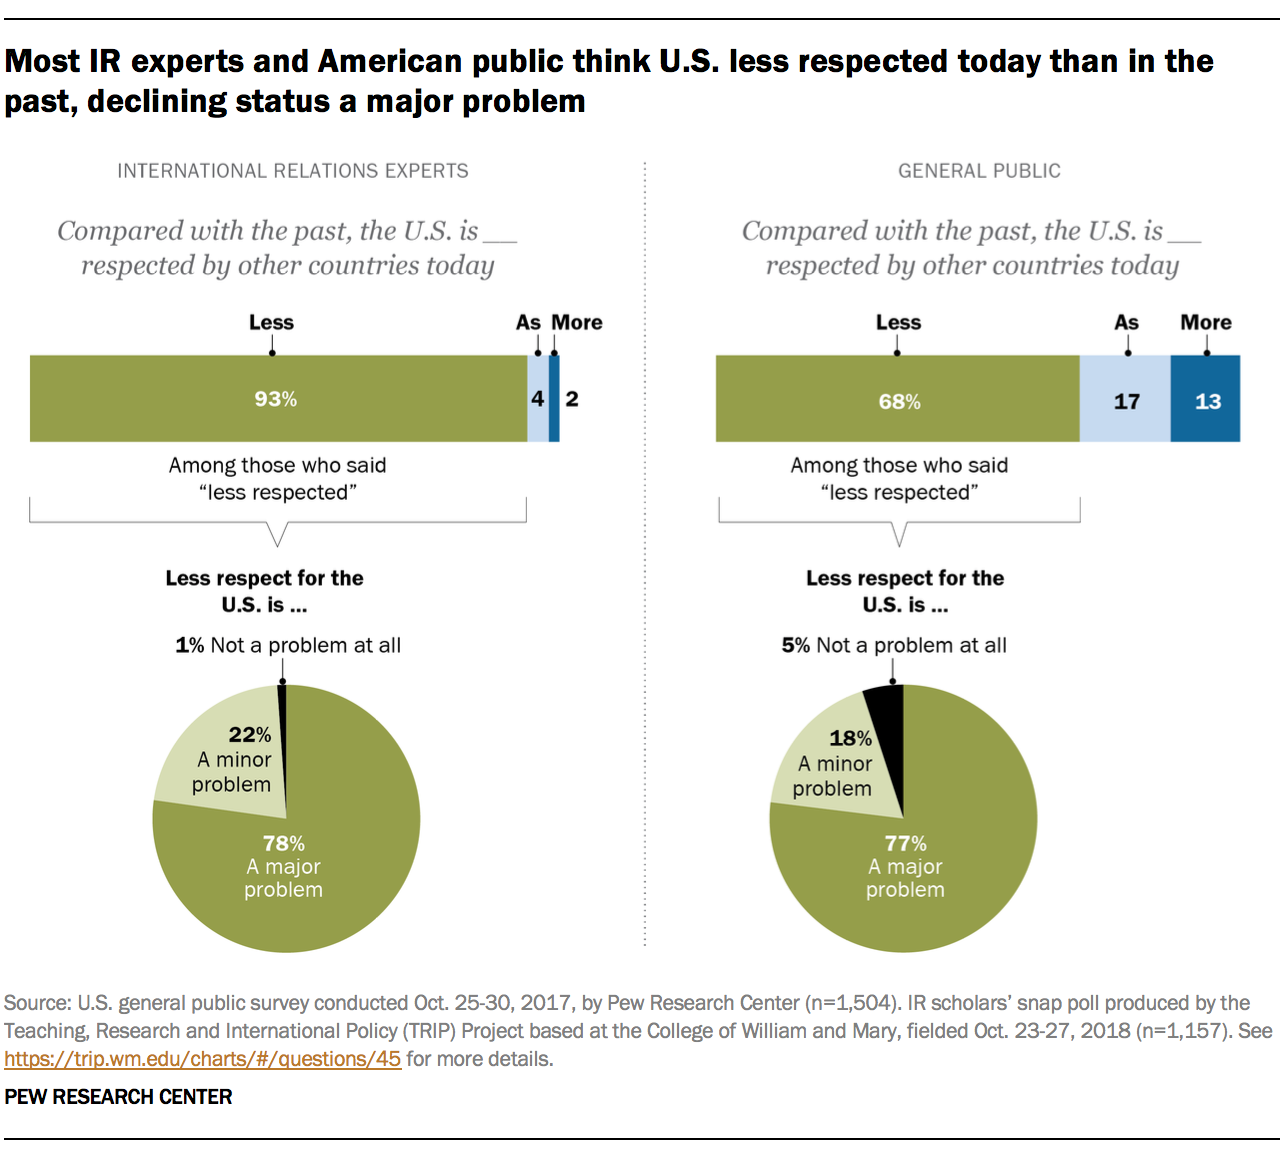 Most IR experts and American public think U.S. less respected today than in the past, declining status a major problem